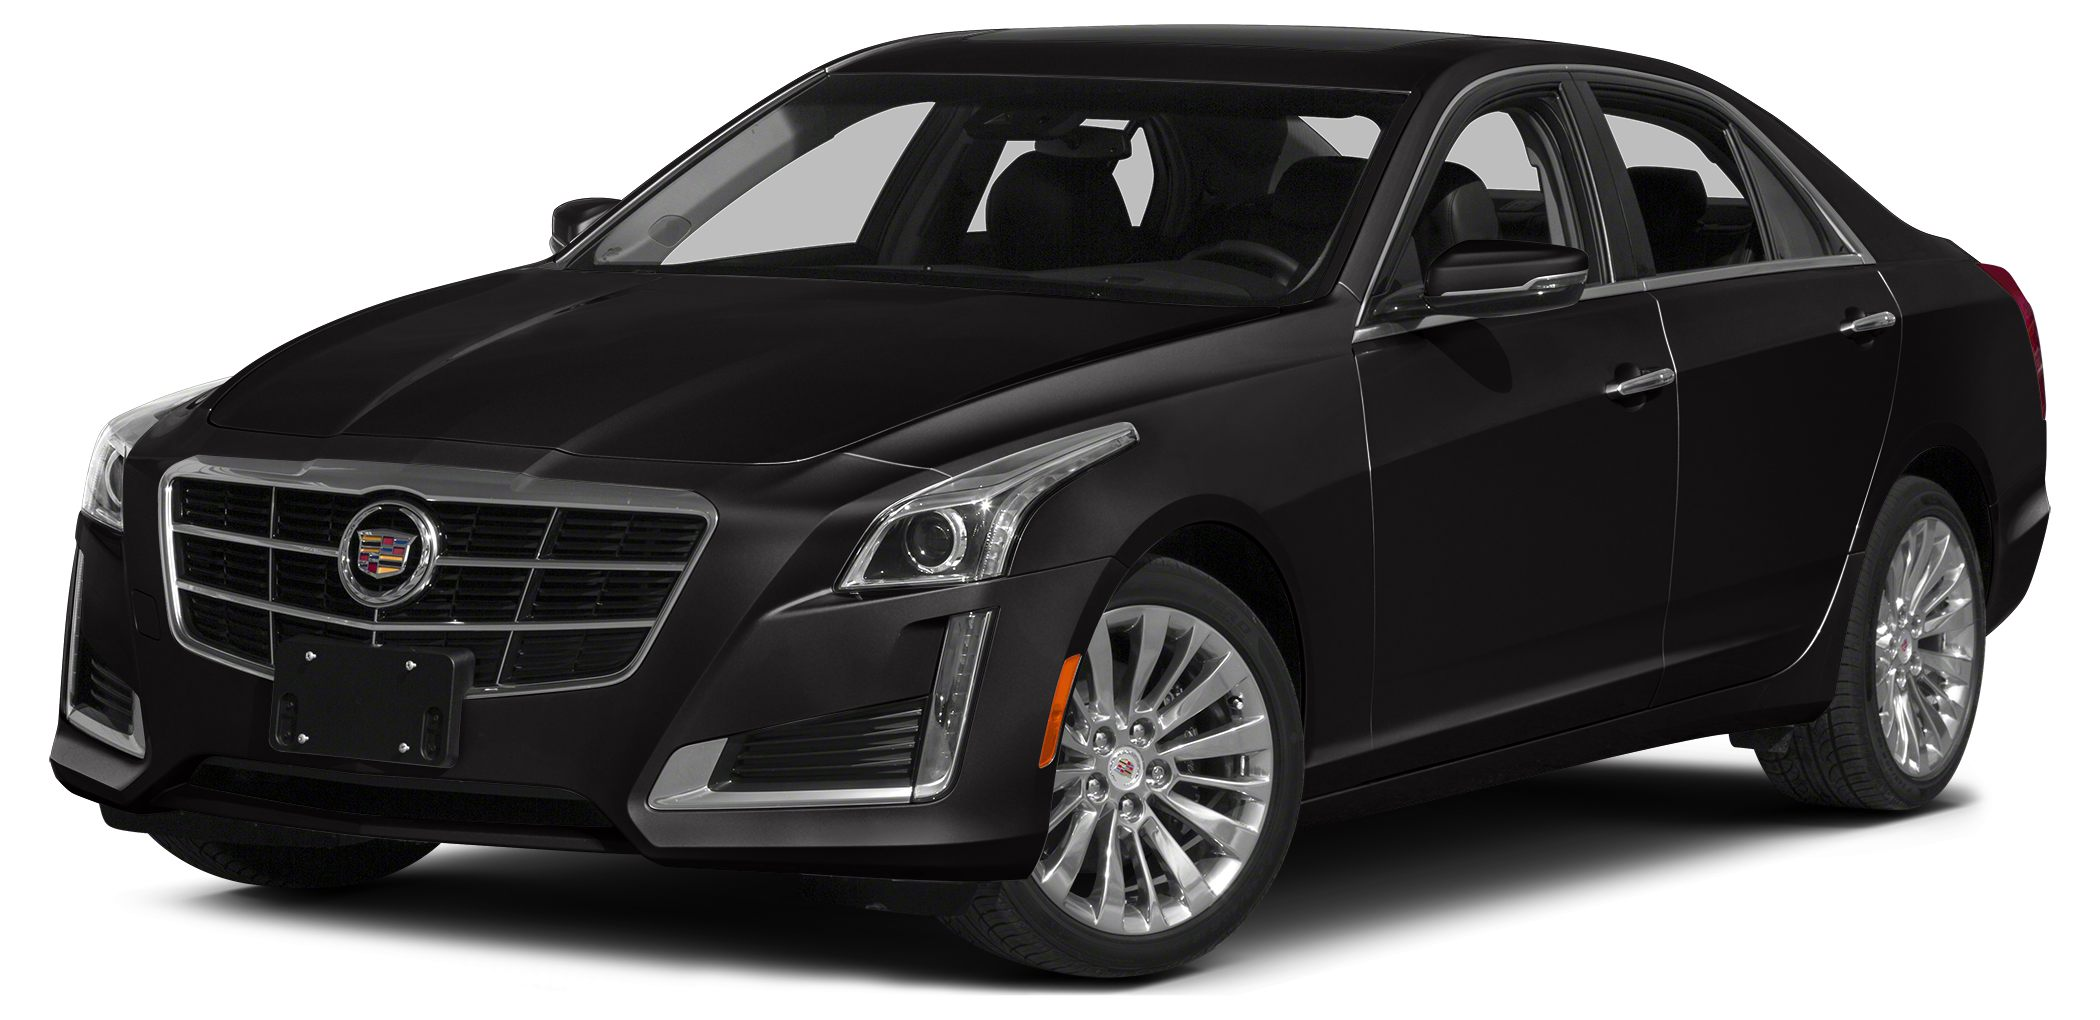 2014 Cadillac CTS Performance PERFORMANCE PKG 20L TURBO JET BLACK LEATHER INTERIOR WITH MORELLO R